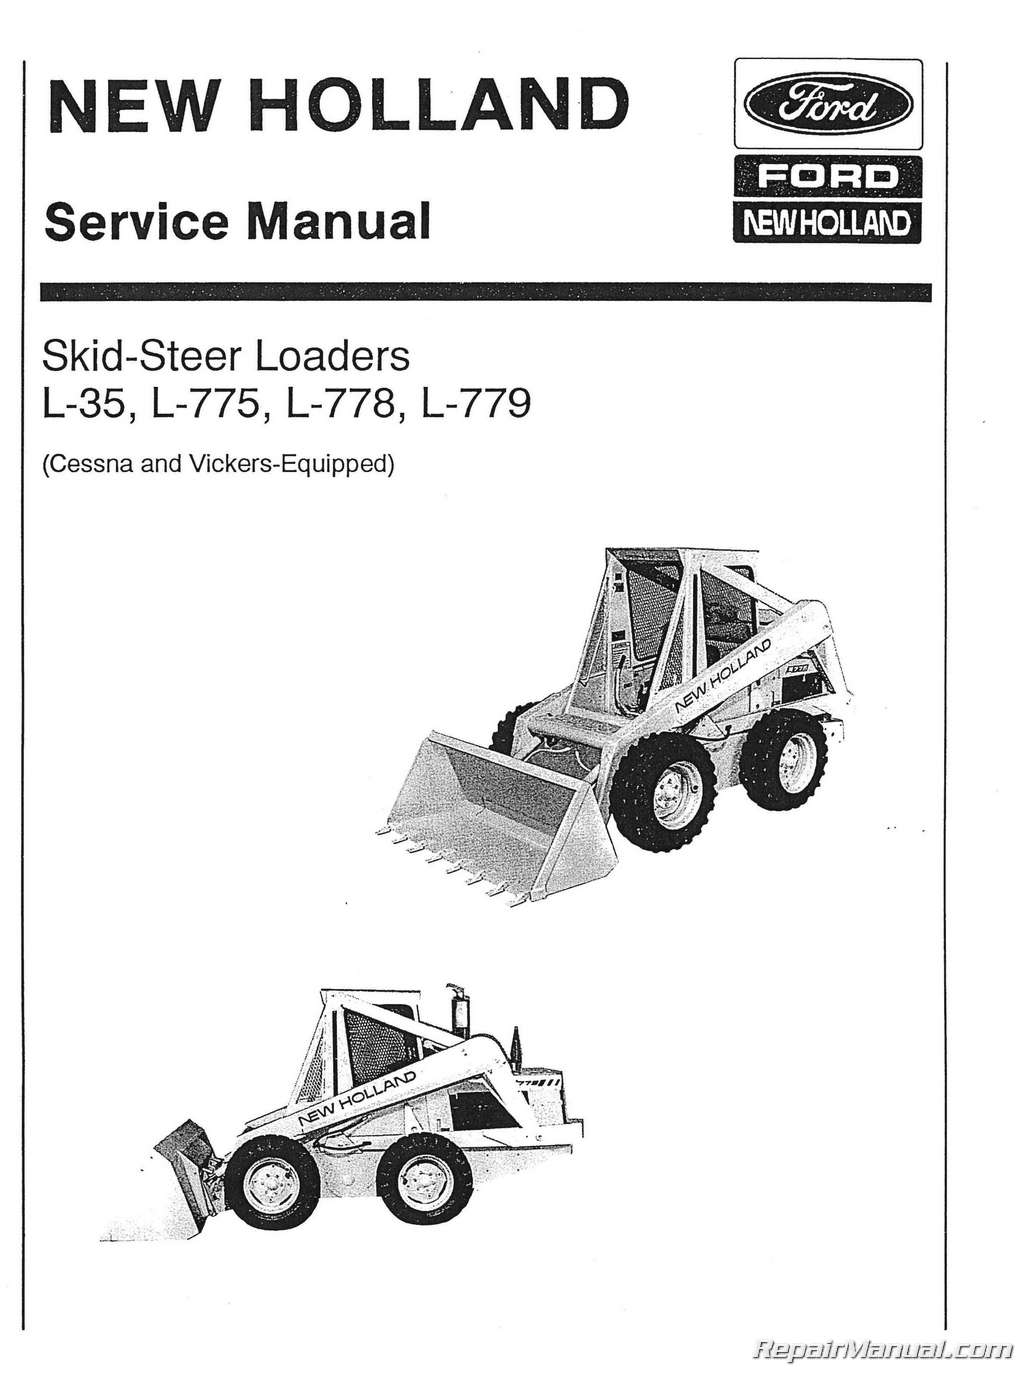 ford new holland l35 l775 l778 l779 skid steer service manual rh repairmanual com new holland manuals free new holland manuals on ebay